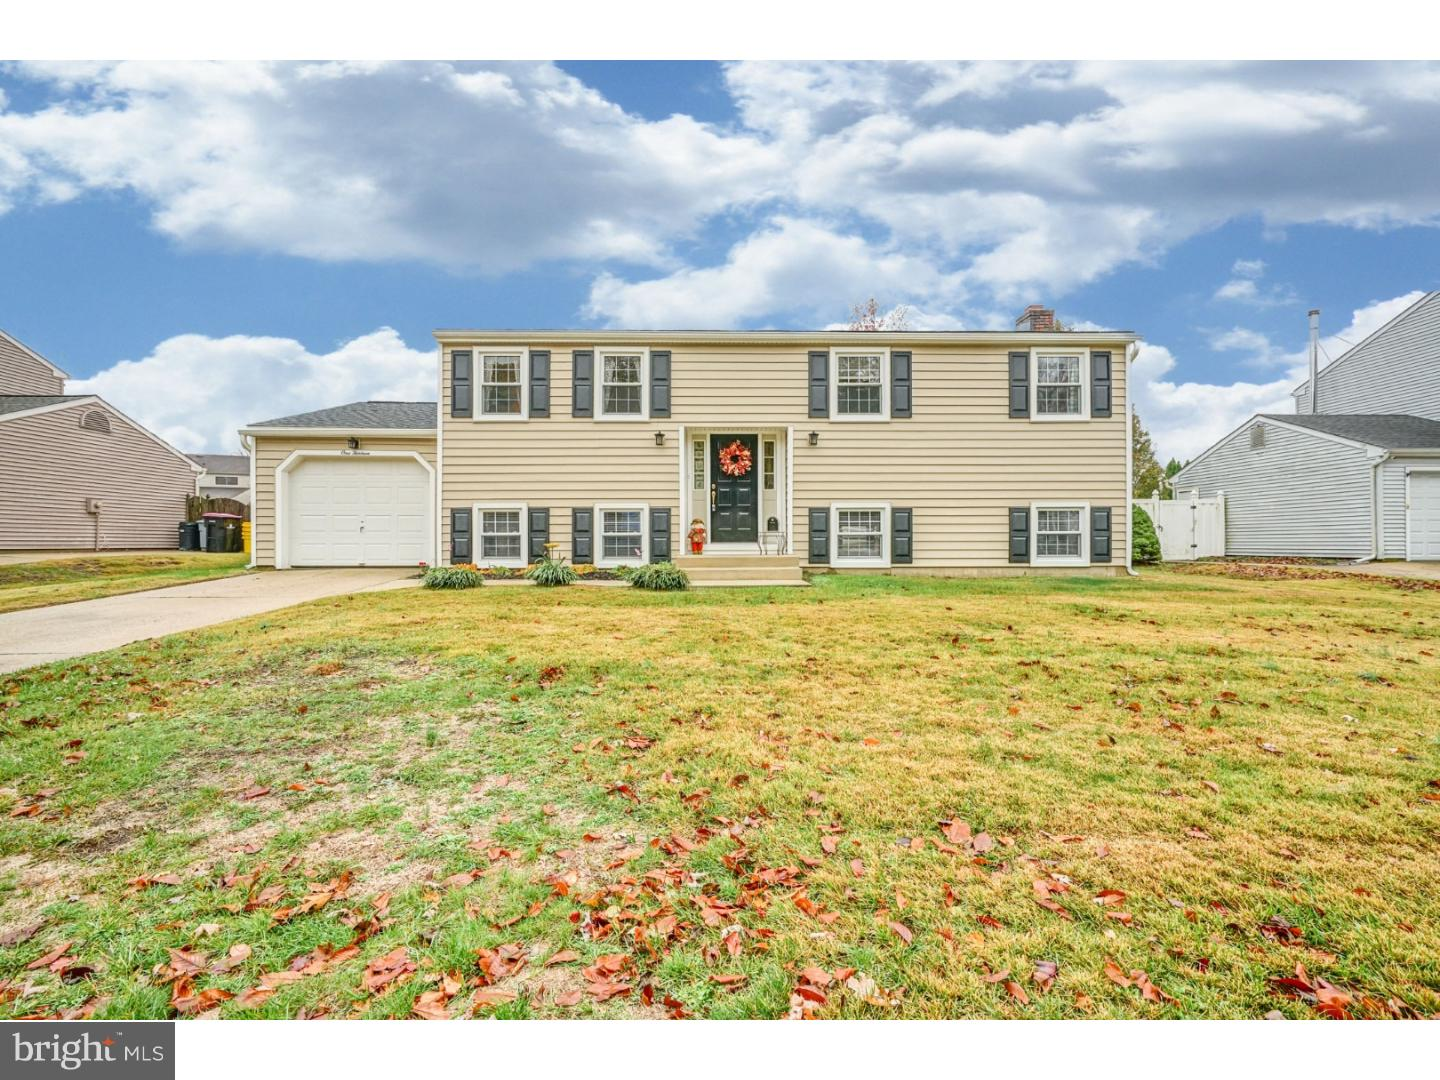 Single Family Home for Sale at 113 LINCOLN Drive Clementon, New Jersey 08021 United States